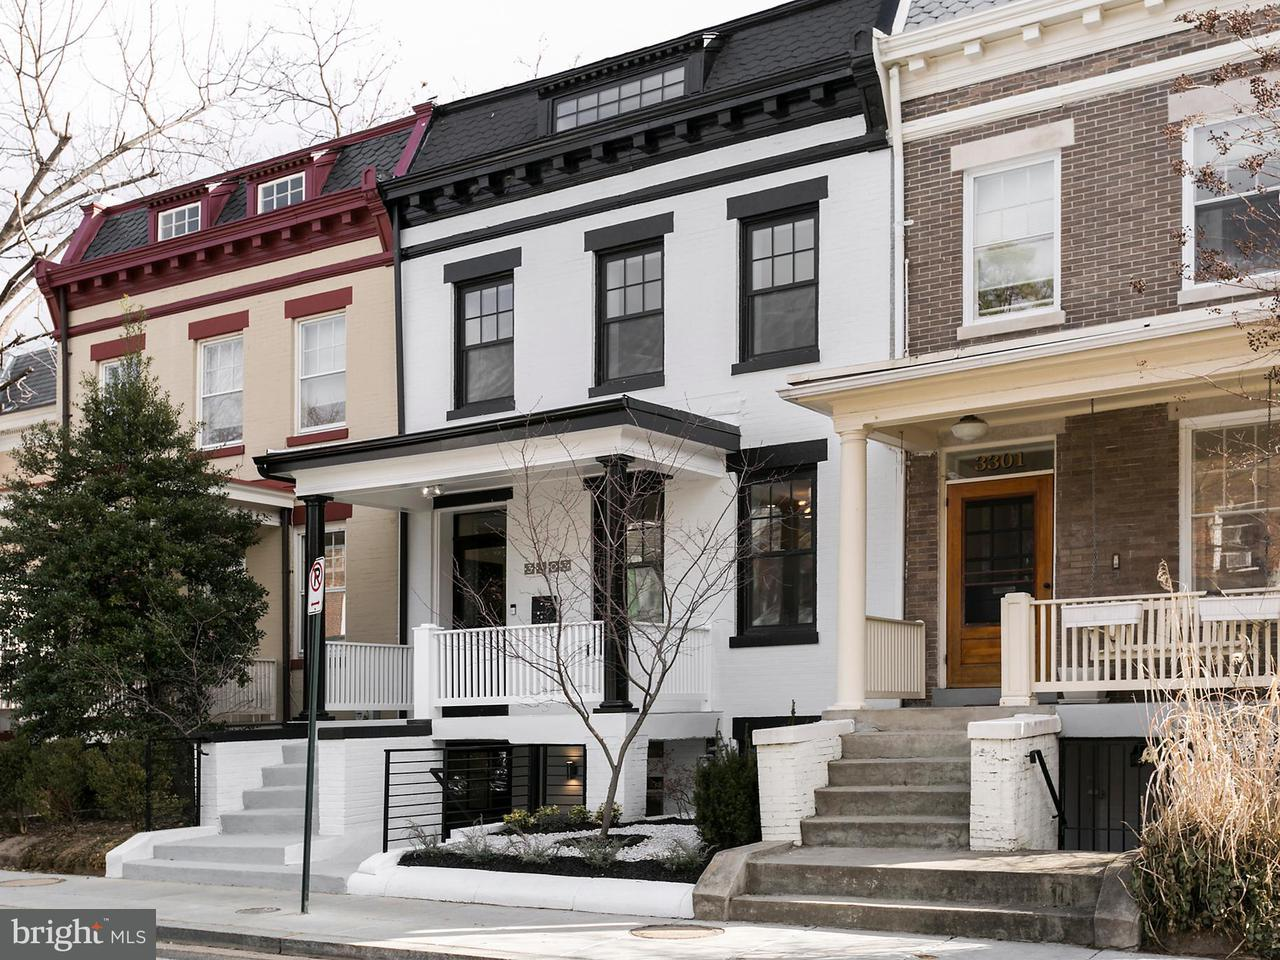 Single Family Home for Sale at 3303 Brown St Nw 3303 Brown St Nw Washington, District Of Columbia 20010 United States